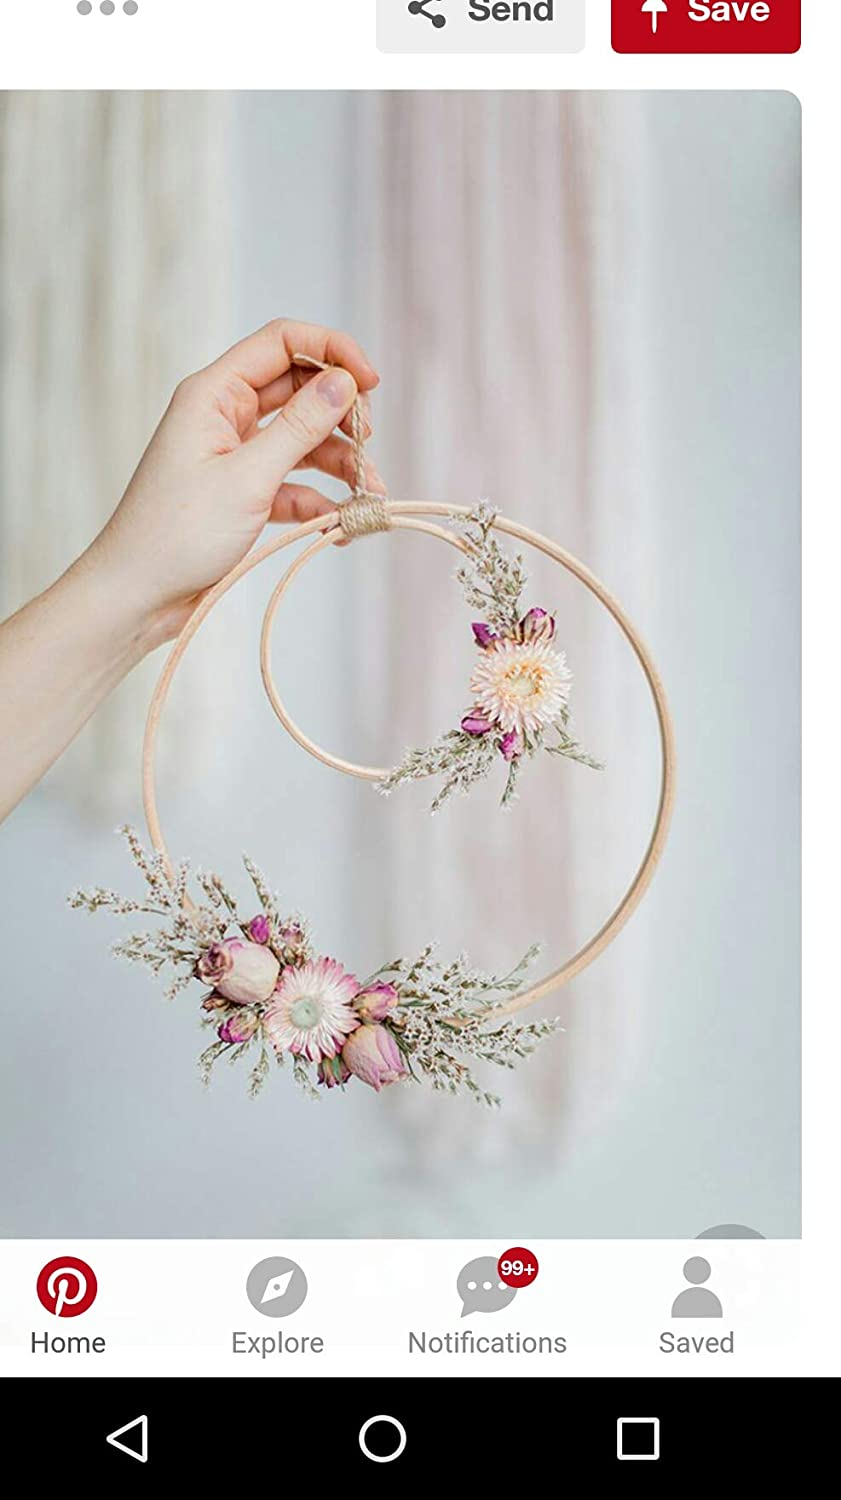 Wooden Ring Circle Hoop Baby Mobile| Mobile for Crib| Dia from 4.1 to 12 inches//from 10.5 to 30.5cm Eco Baby Shower Holder//arm Baby kit 4.1 inches 10.5 cm Baby Moile Hanging for Bed